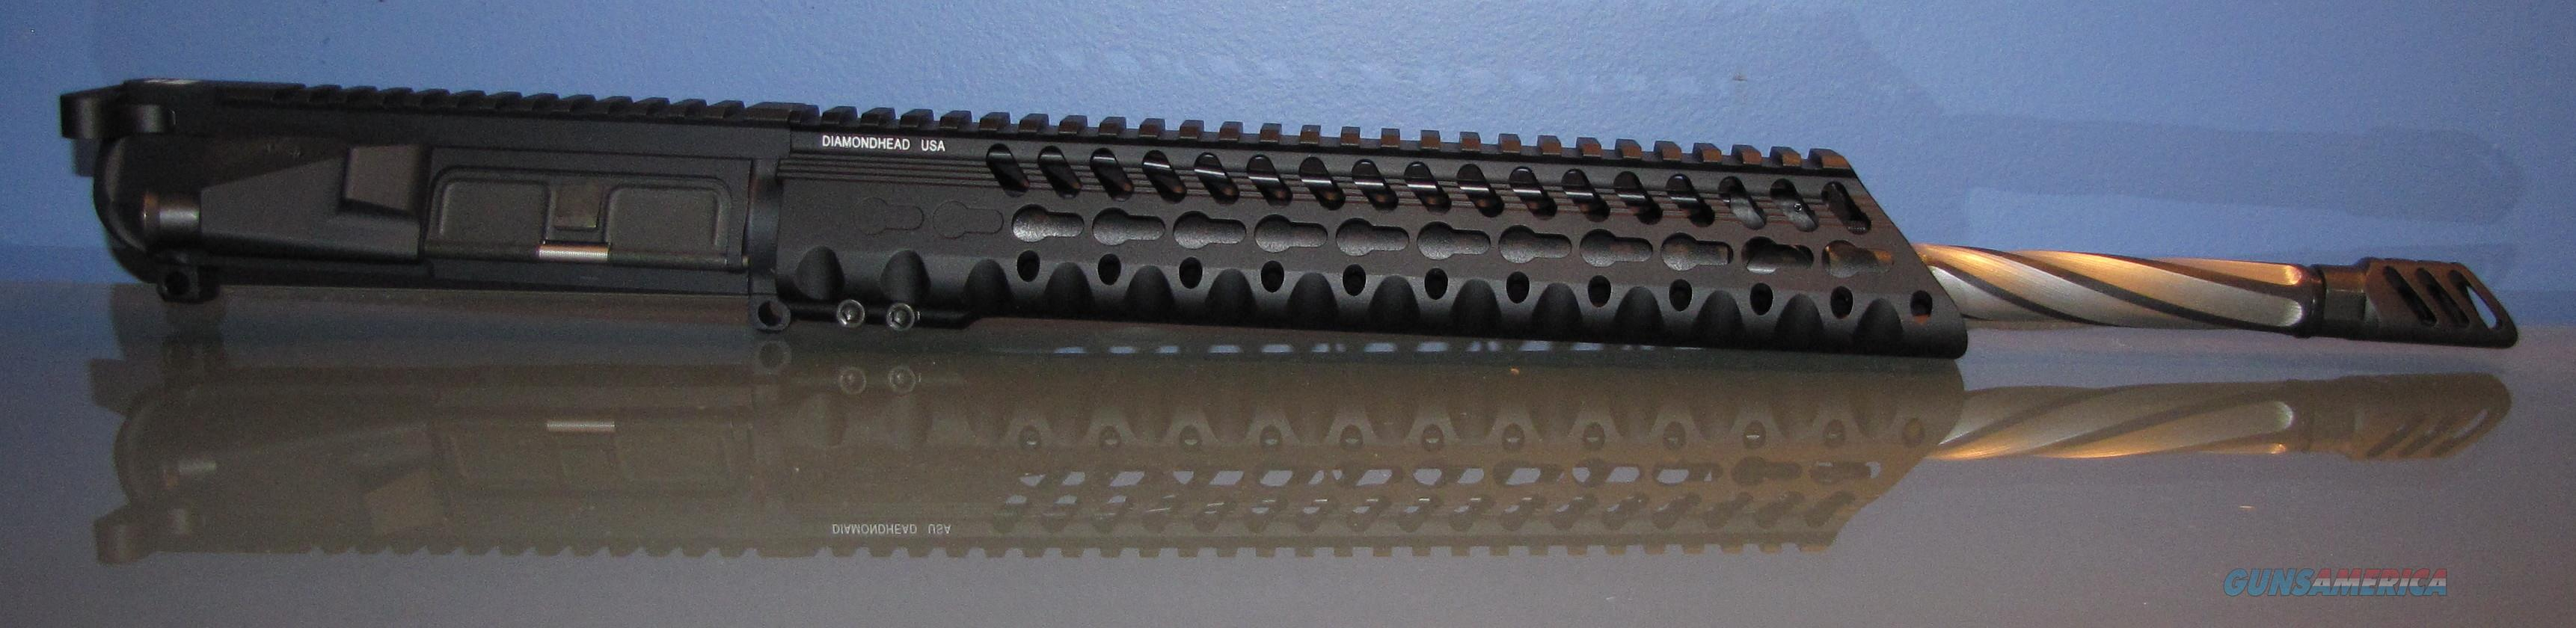 "B.T.A. ""VR Match"" 16"" 5.56 AR15 upper/Special Free Ship & NO CC FEES with BIN  Non-Guns > Gun Parts > M16-AR15"